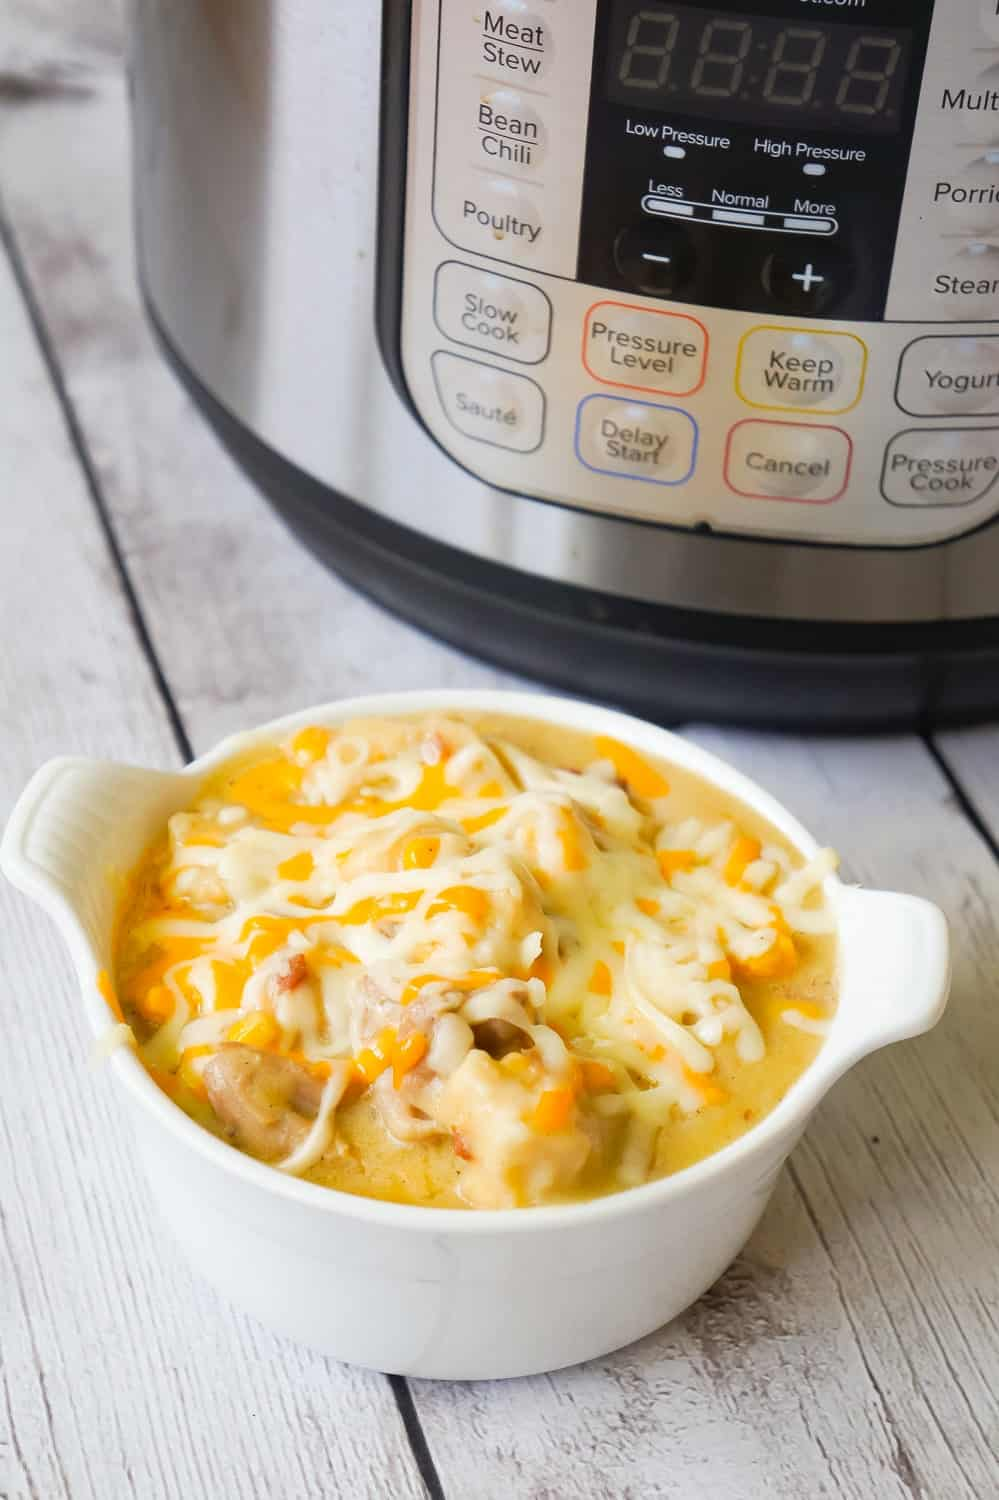 Instant Pot Chicken and Dumplings is an easy dinner recipe using boneless, skinless chicken thighs. This chicken and dumpling recipe uses Pillsbury refrigerated biscuit dough and is loaded with cheese and bacon.